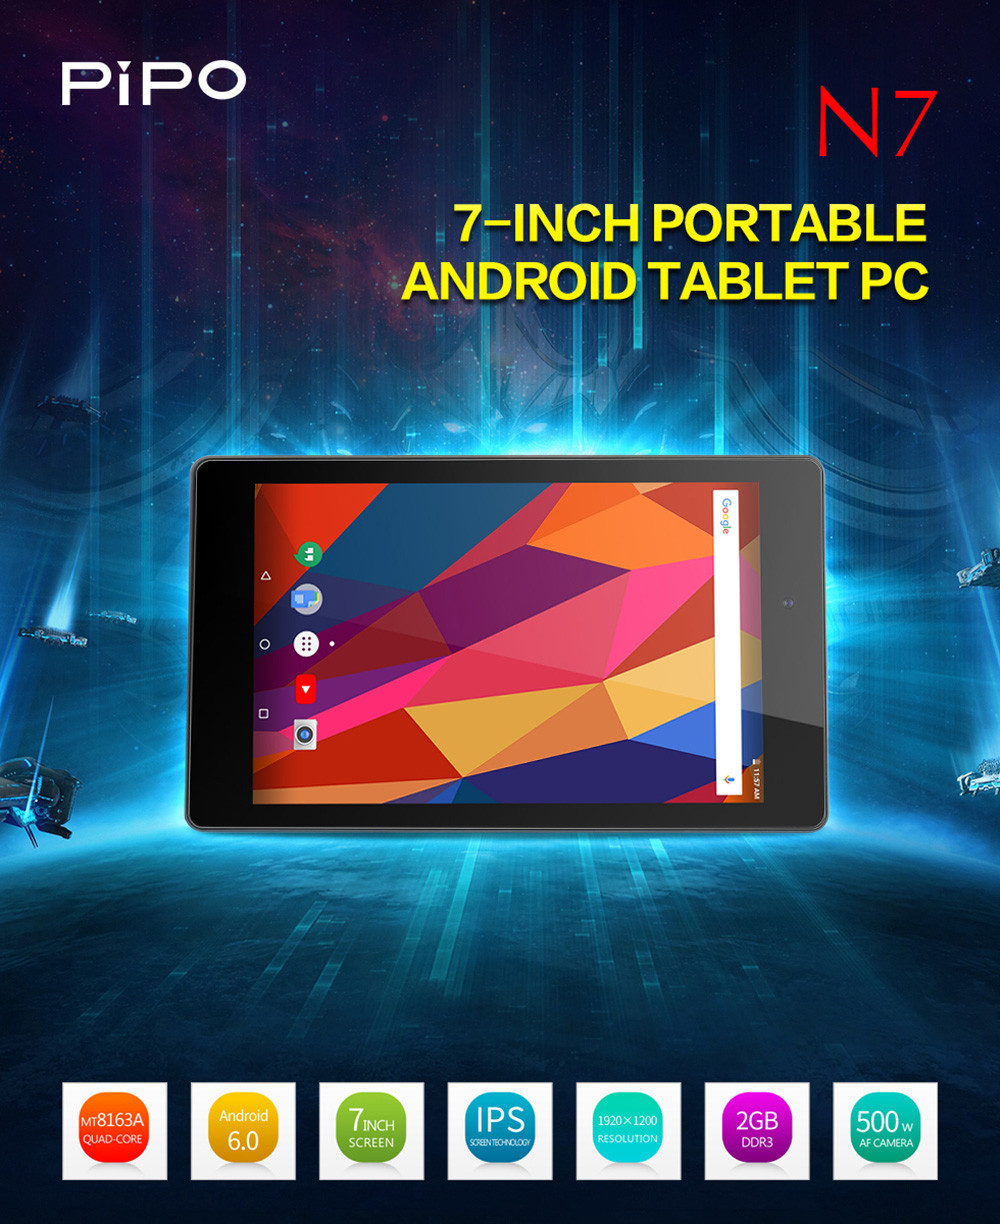 Pipo N7 7.0 inch Tablet PC Android 6.0 MTK8163 Quad Core 1.5GHz 2GB RAM 32GB ROM HDMI